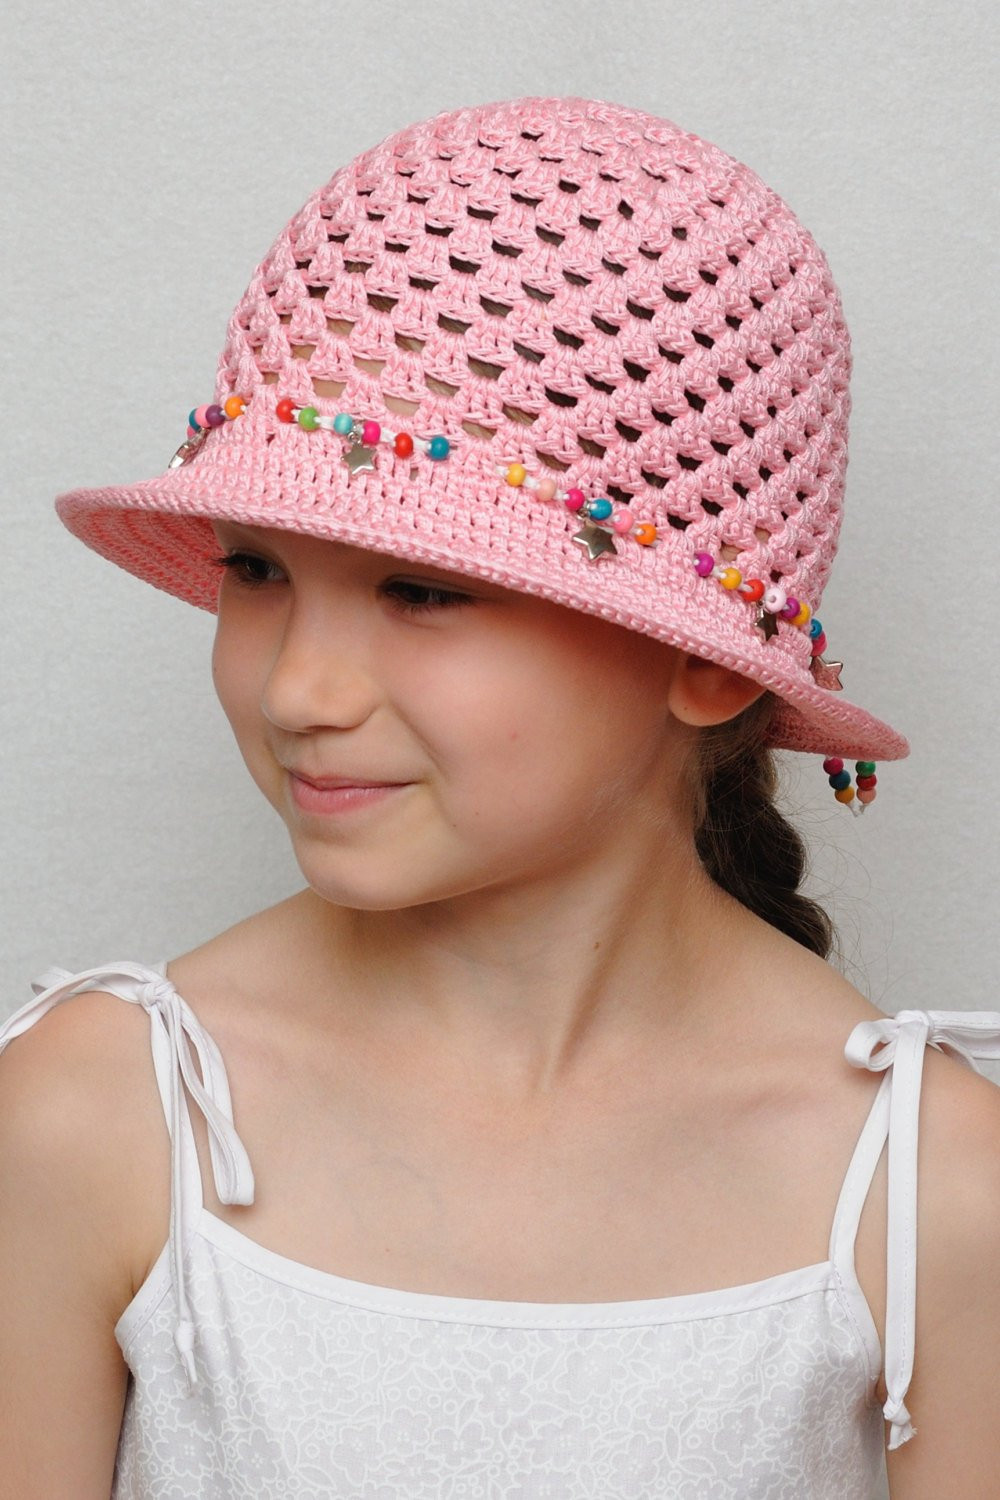 Best Of Crochet Summer Hat Girls Sun Hat Girls Summer Hat by Crochet Summer Hat Of Awesome 45 Images Crochet Summer Hat